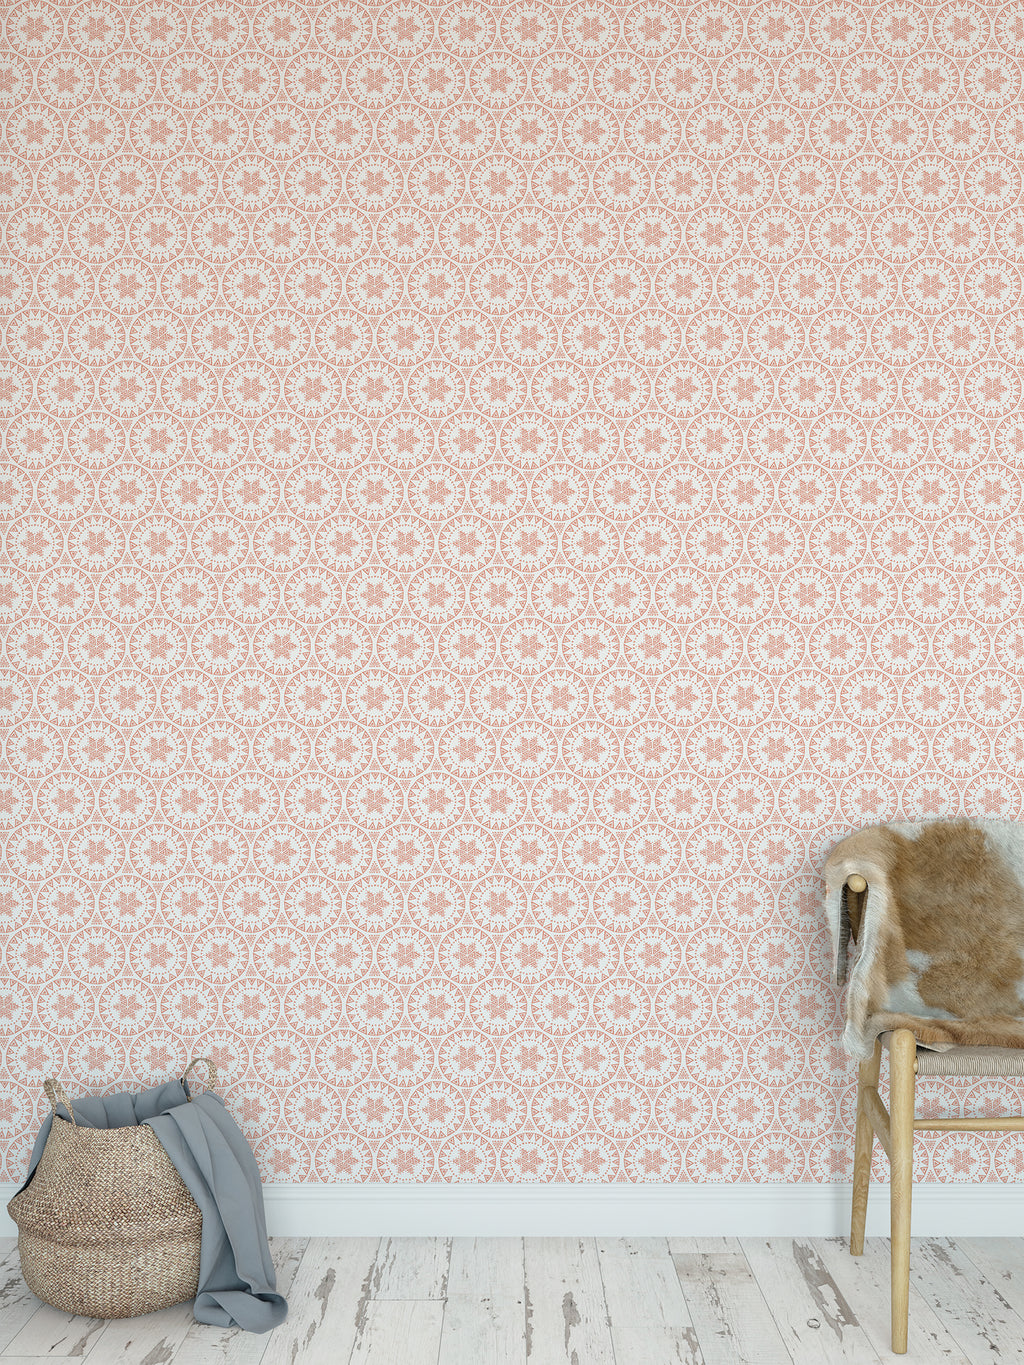 FREE SPIRIT CORAL Peel and Stick Wallpaper By Tiffany Wong